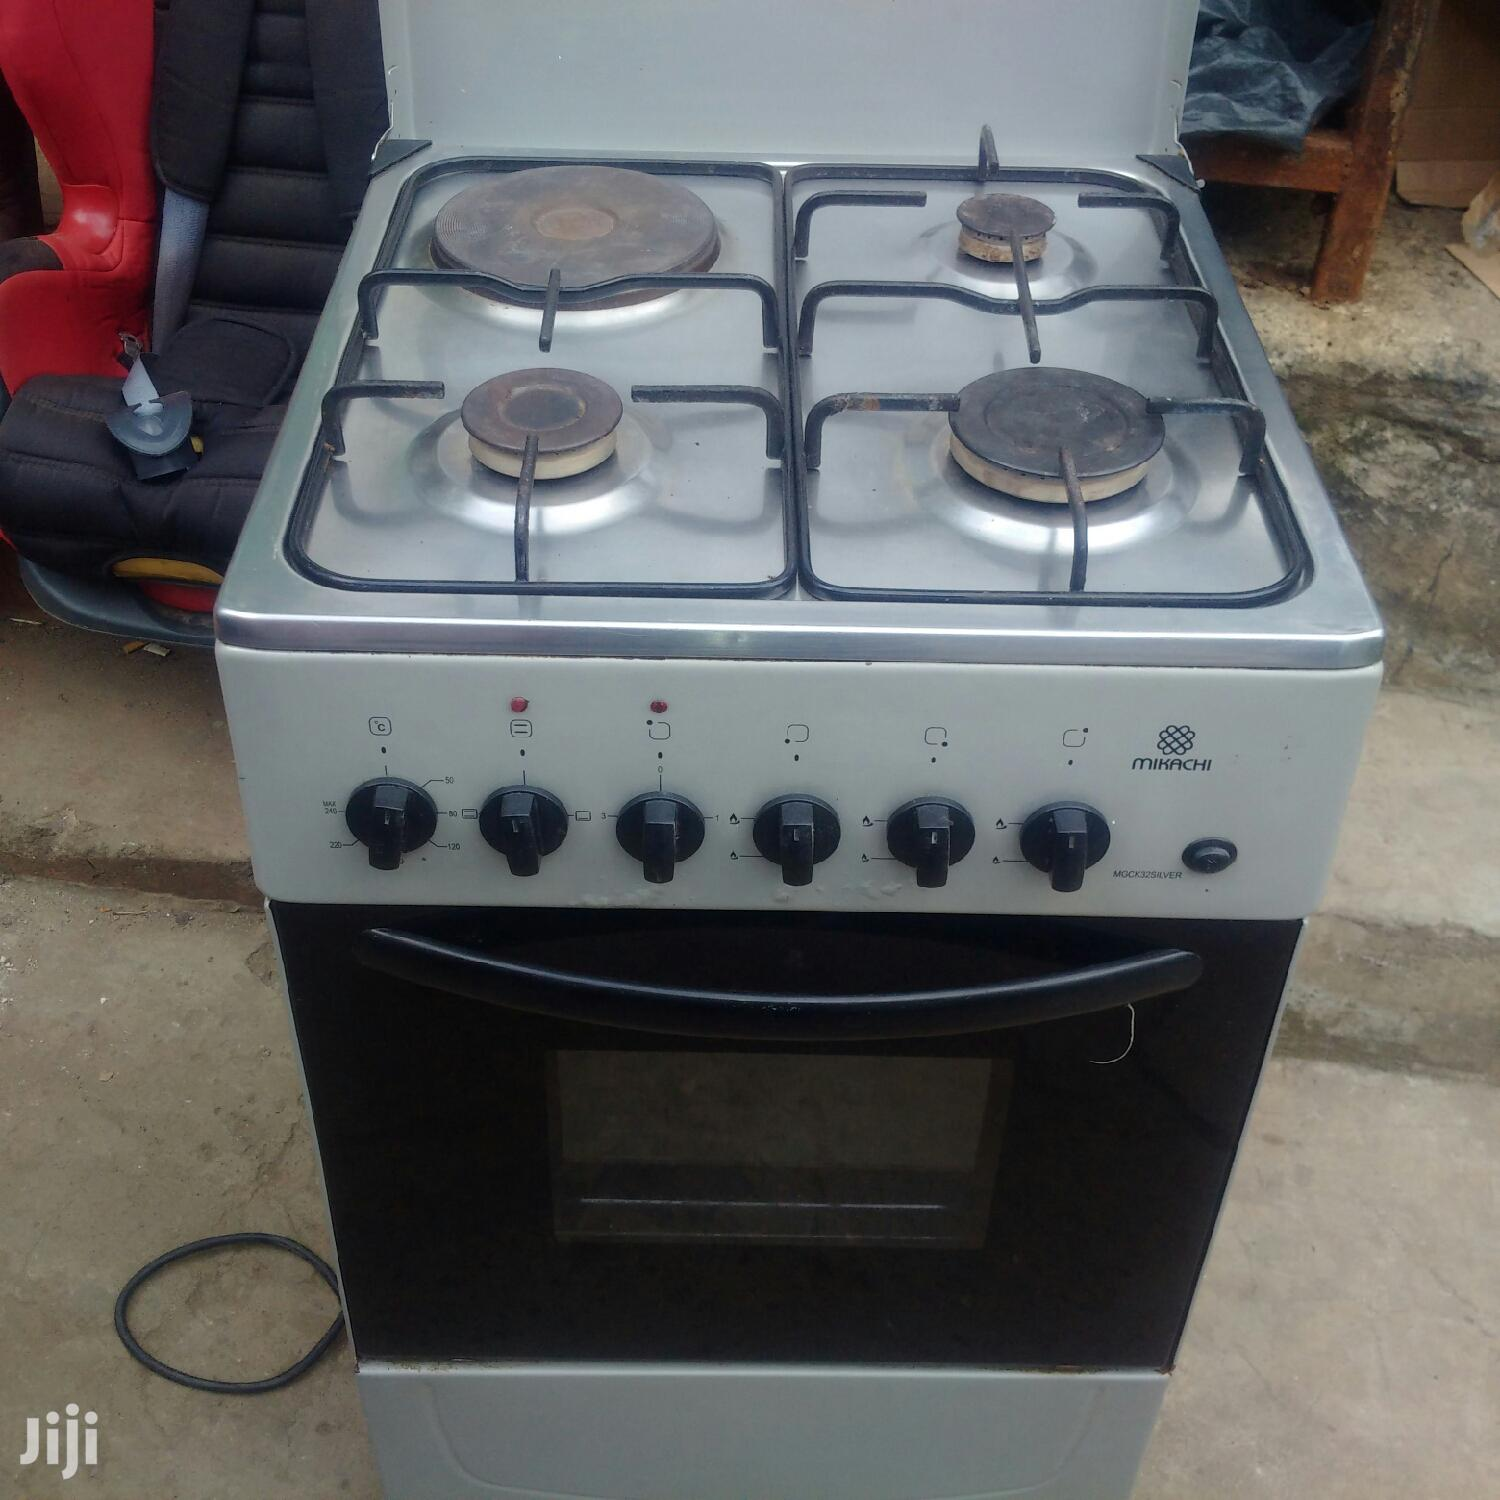 Mikachi Cooker 3gas 1 Electric Plus Oven | Kitchen Appliances for sale in Nairobi Central, Nairobi, Kenya